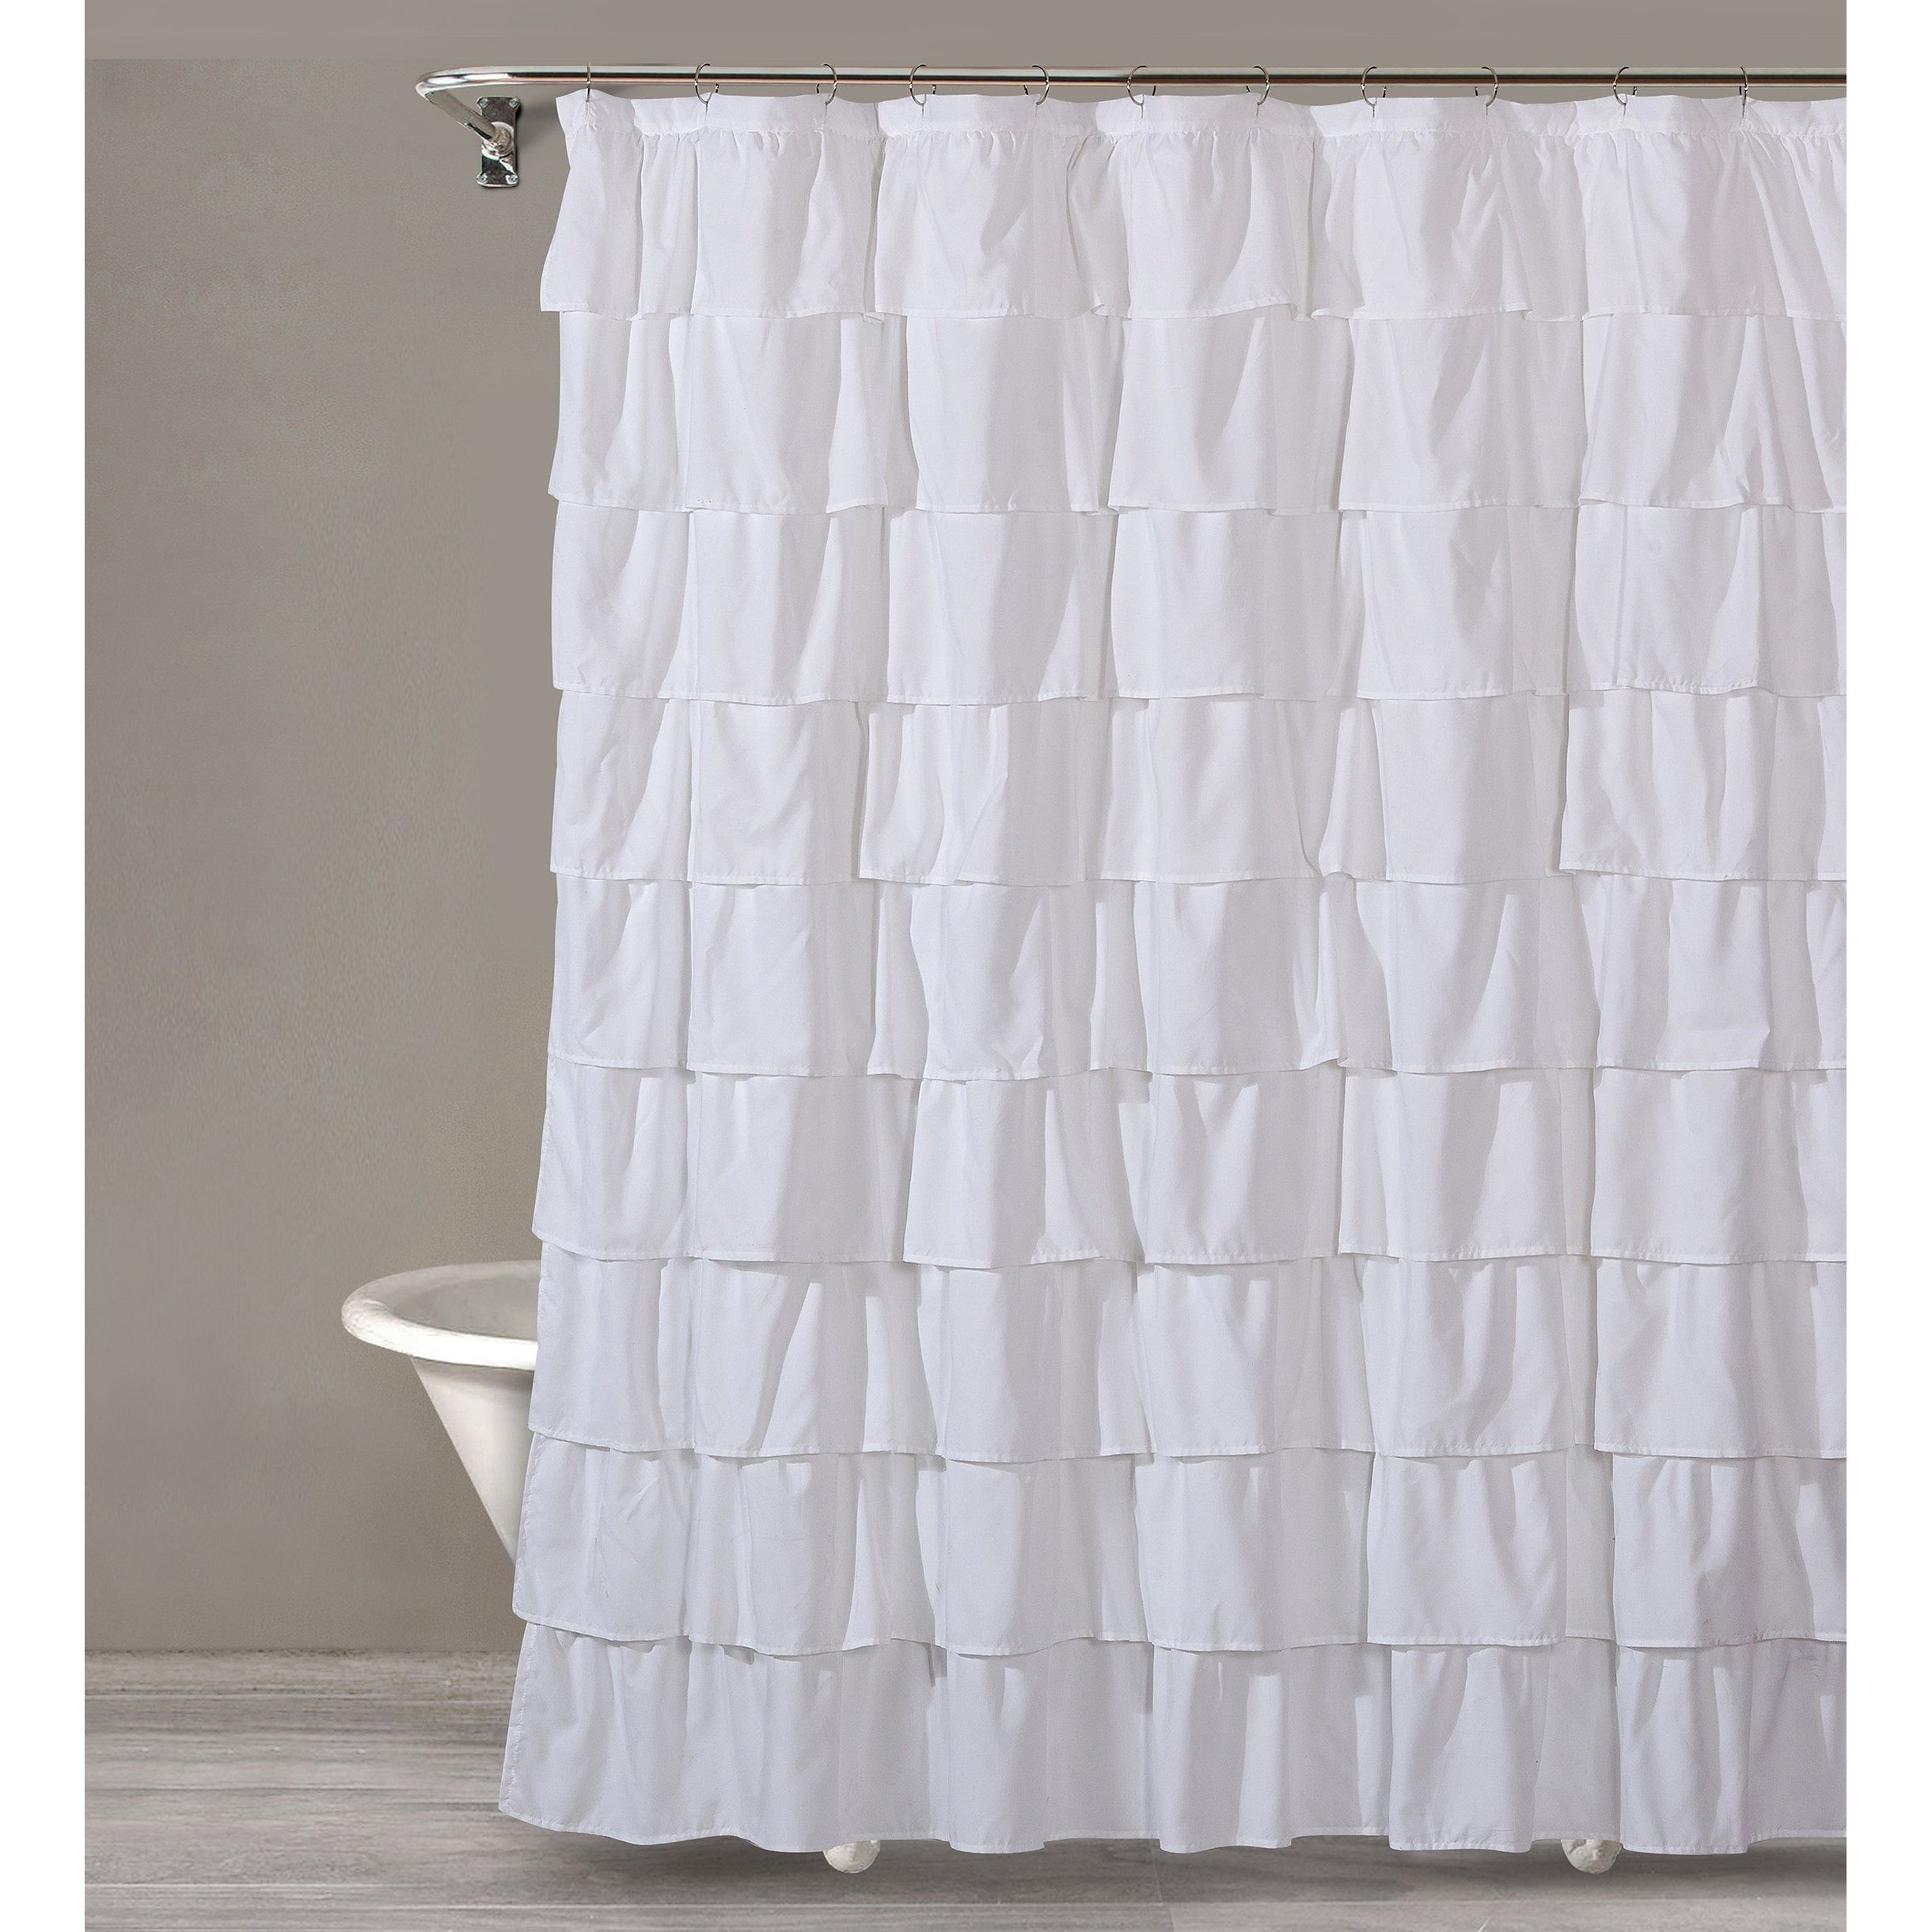 Style Quarters Bianca Ruffle Shower Curtain White Ruffles